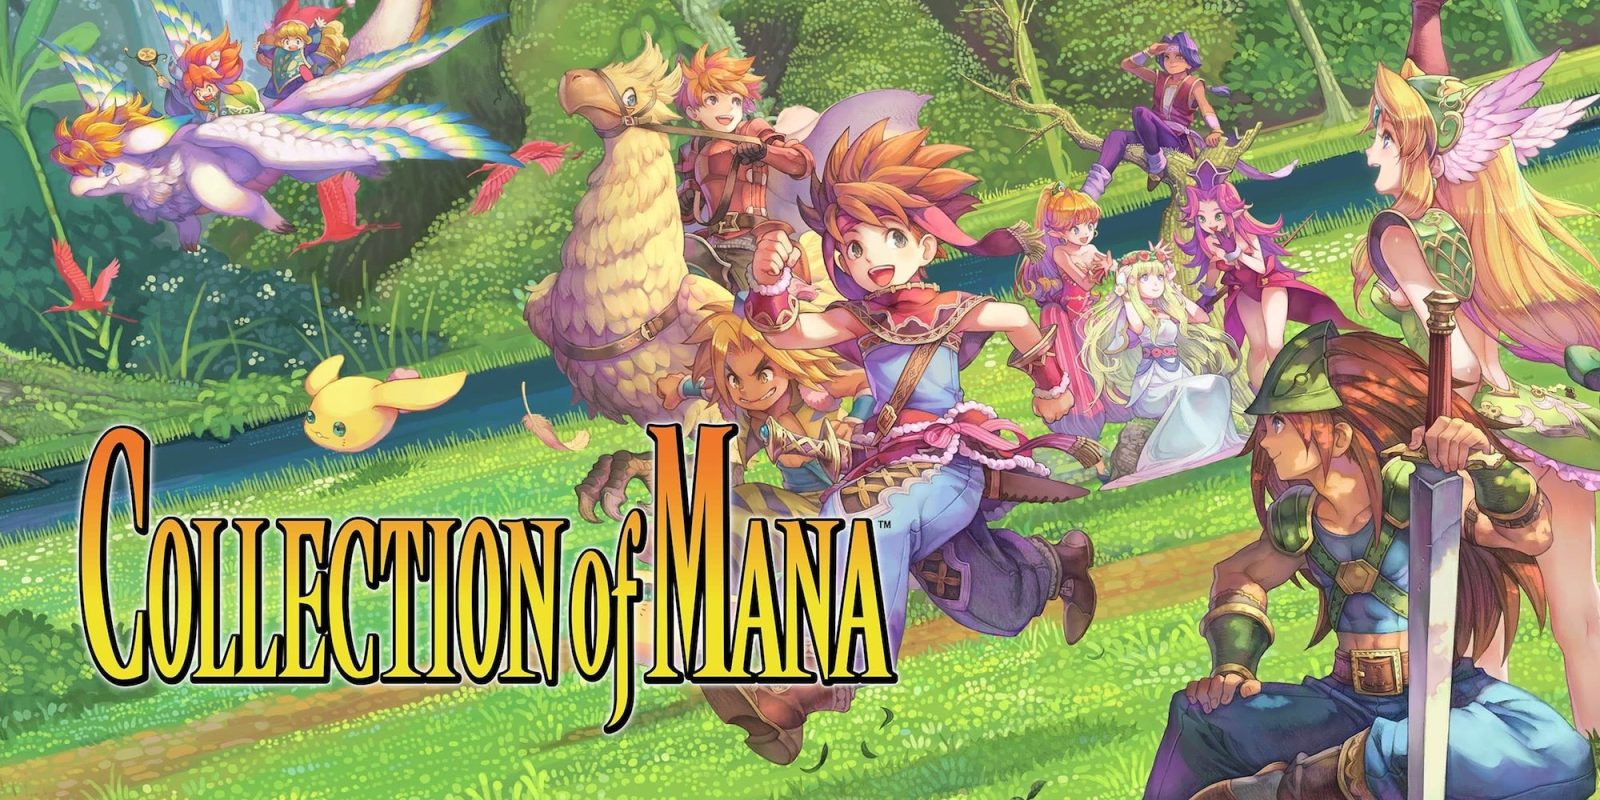 Early Black Friday game deals: Collection of Mana, Death Stranding, many more